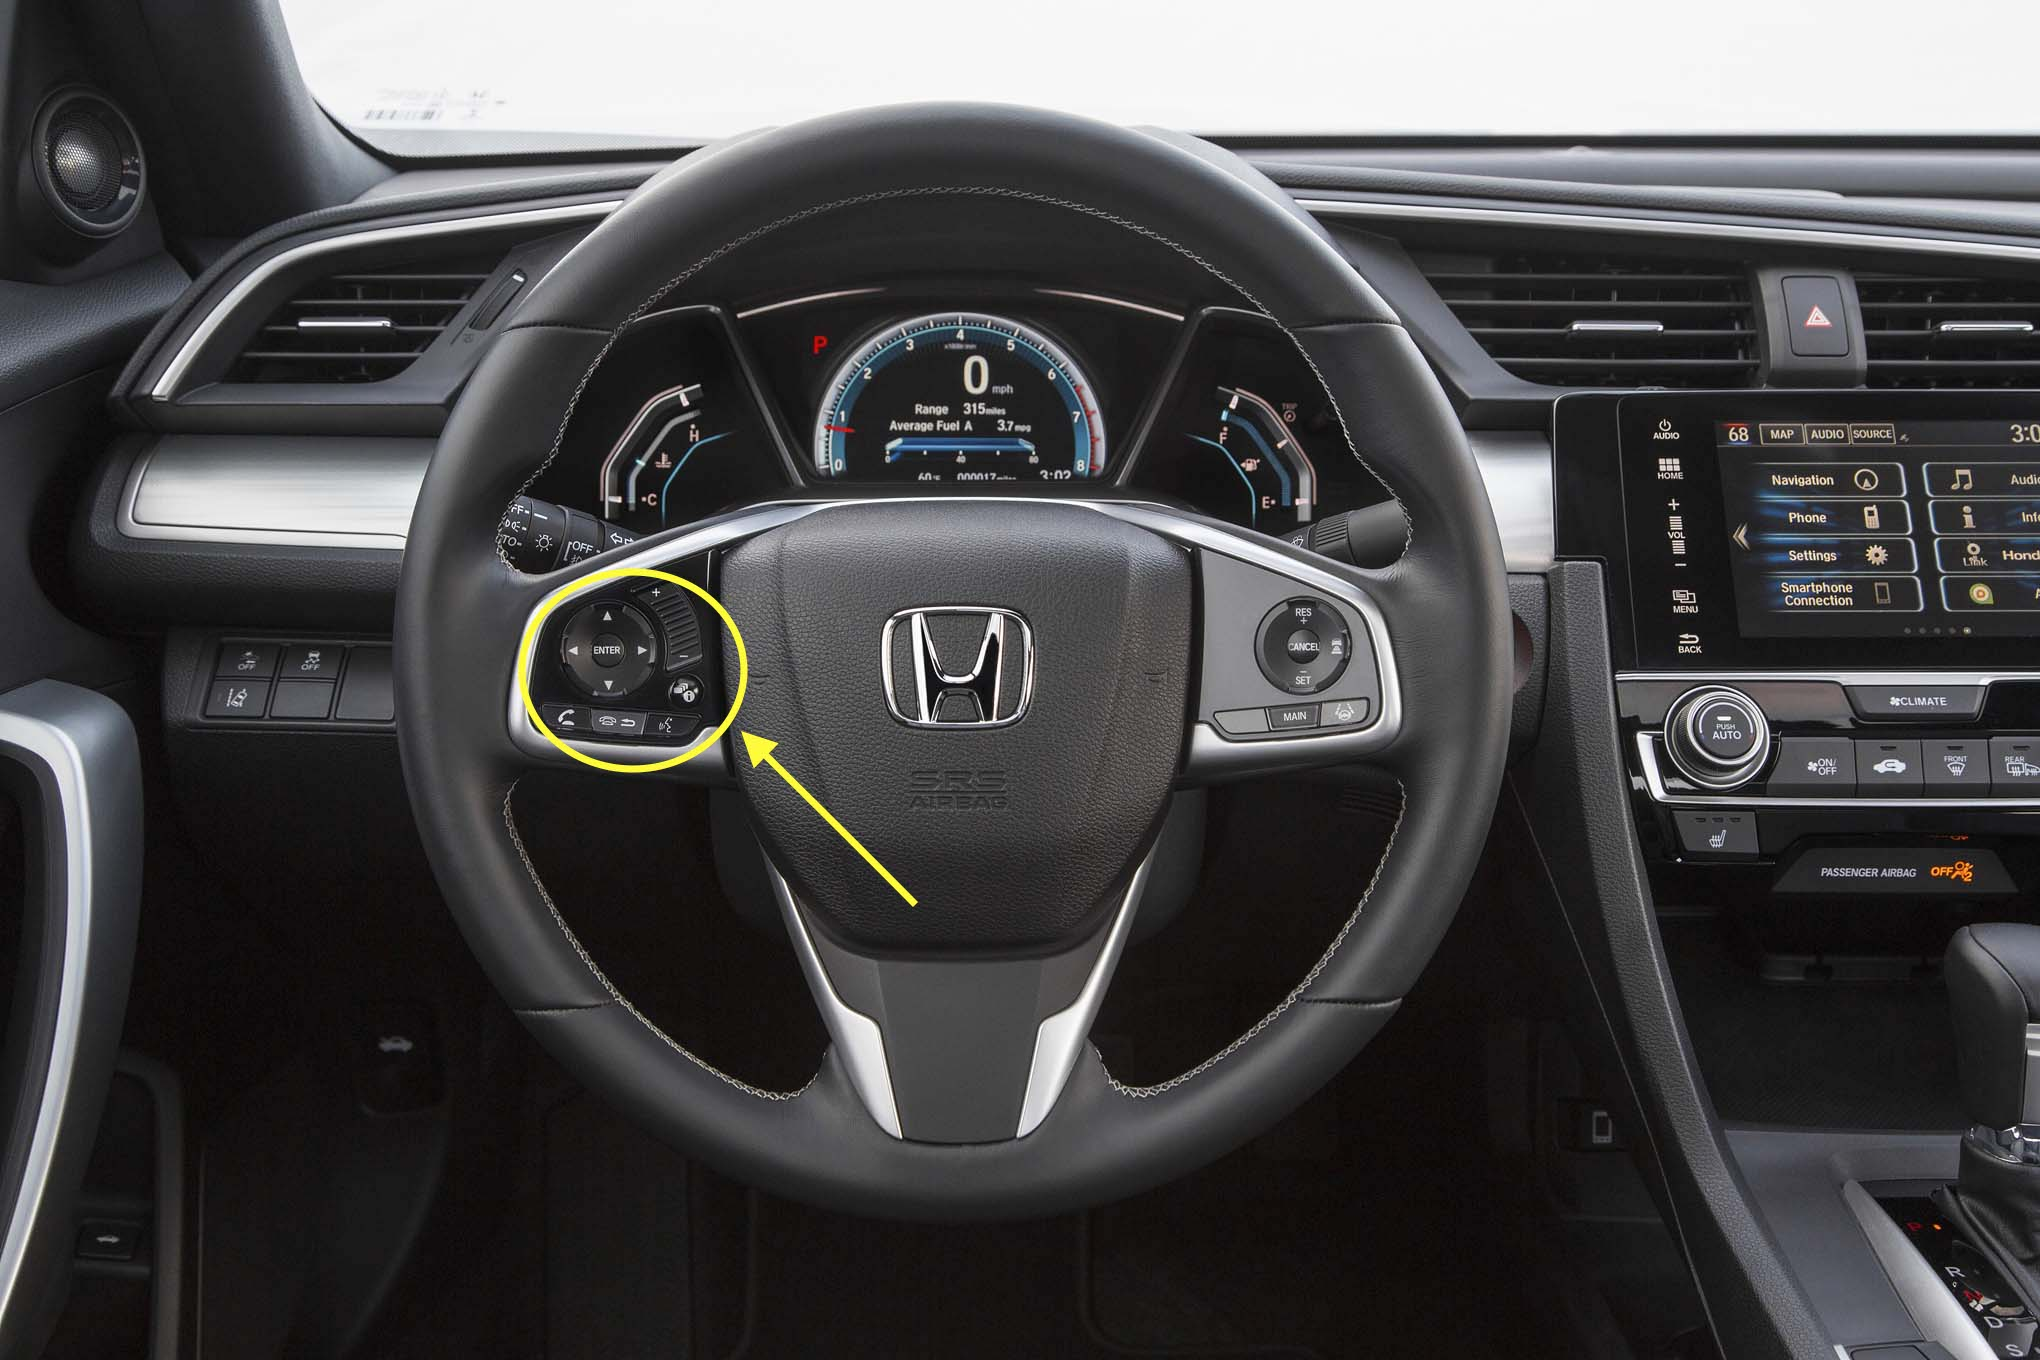 Oil Reset » Blog Archive » 2017 Honda Civic Steering Wheel Controls